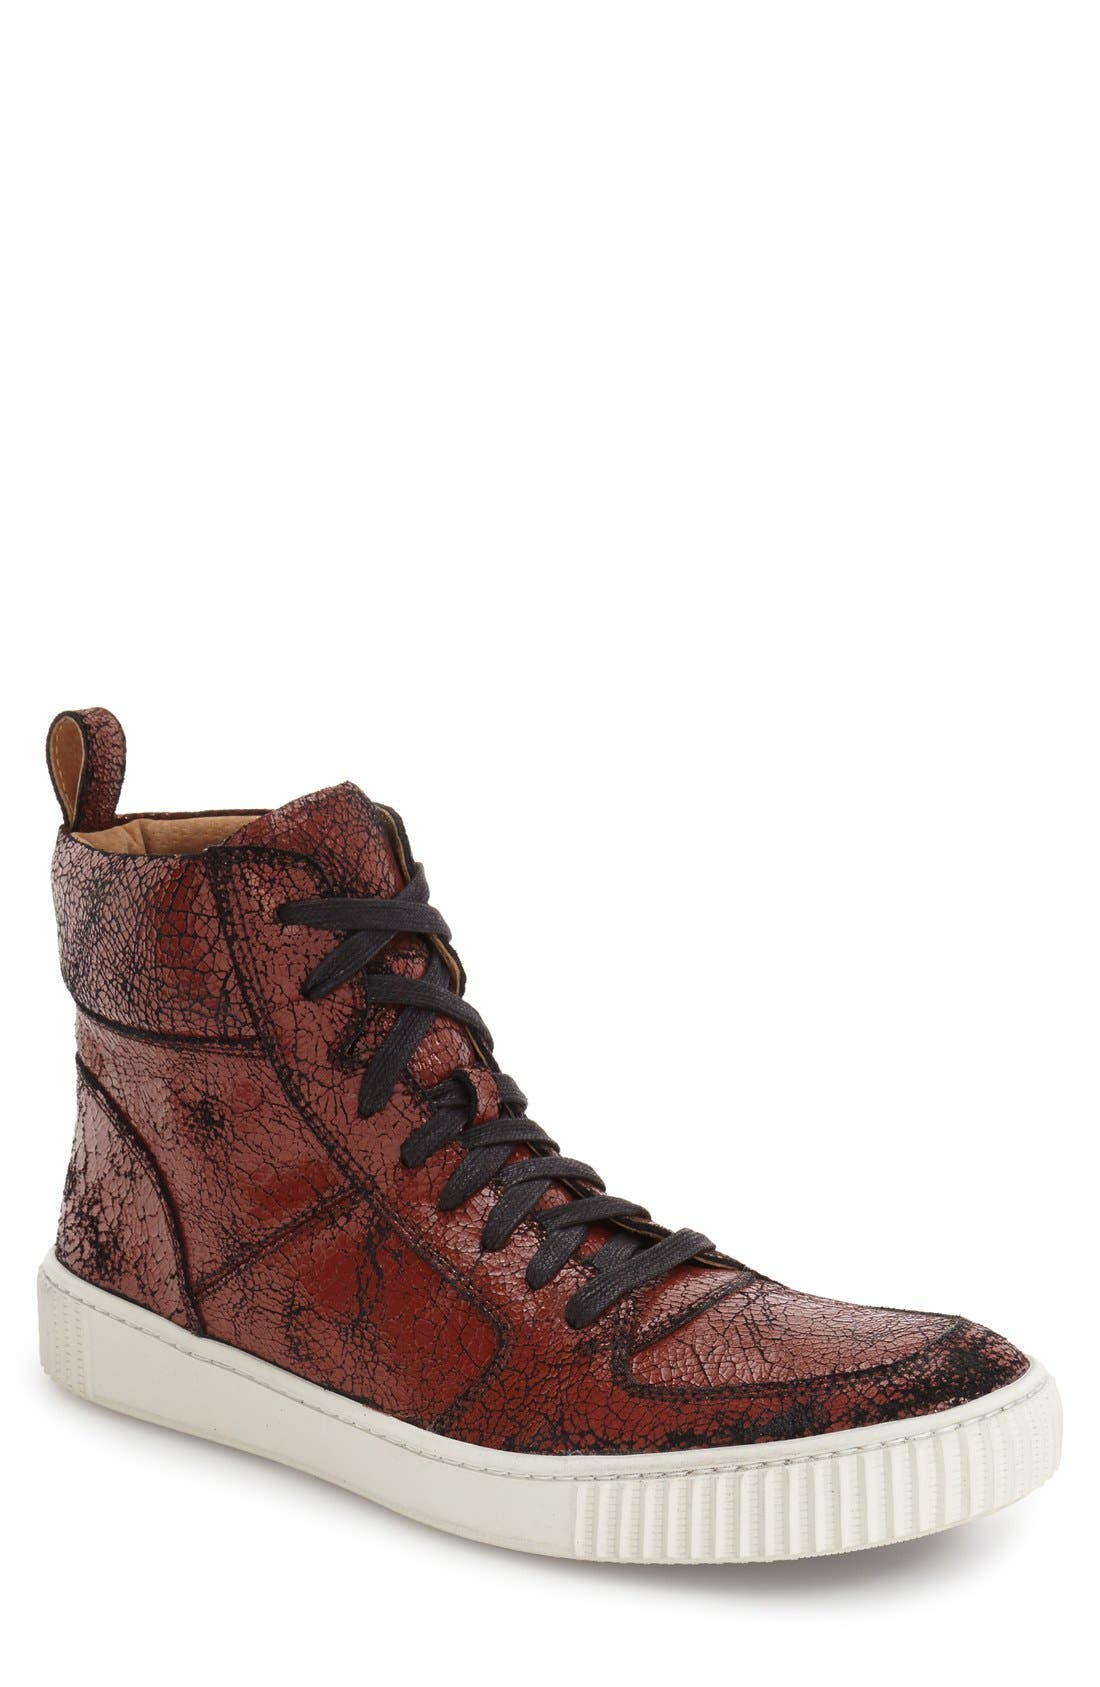 JOHN VARVATOS STAR USA 'Bedford' High Top Sneaker